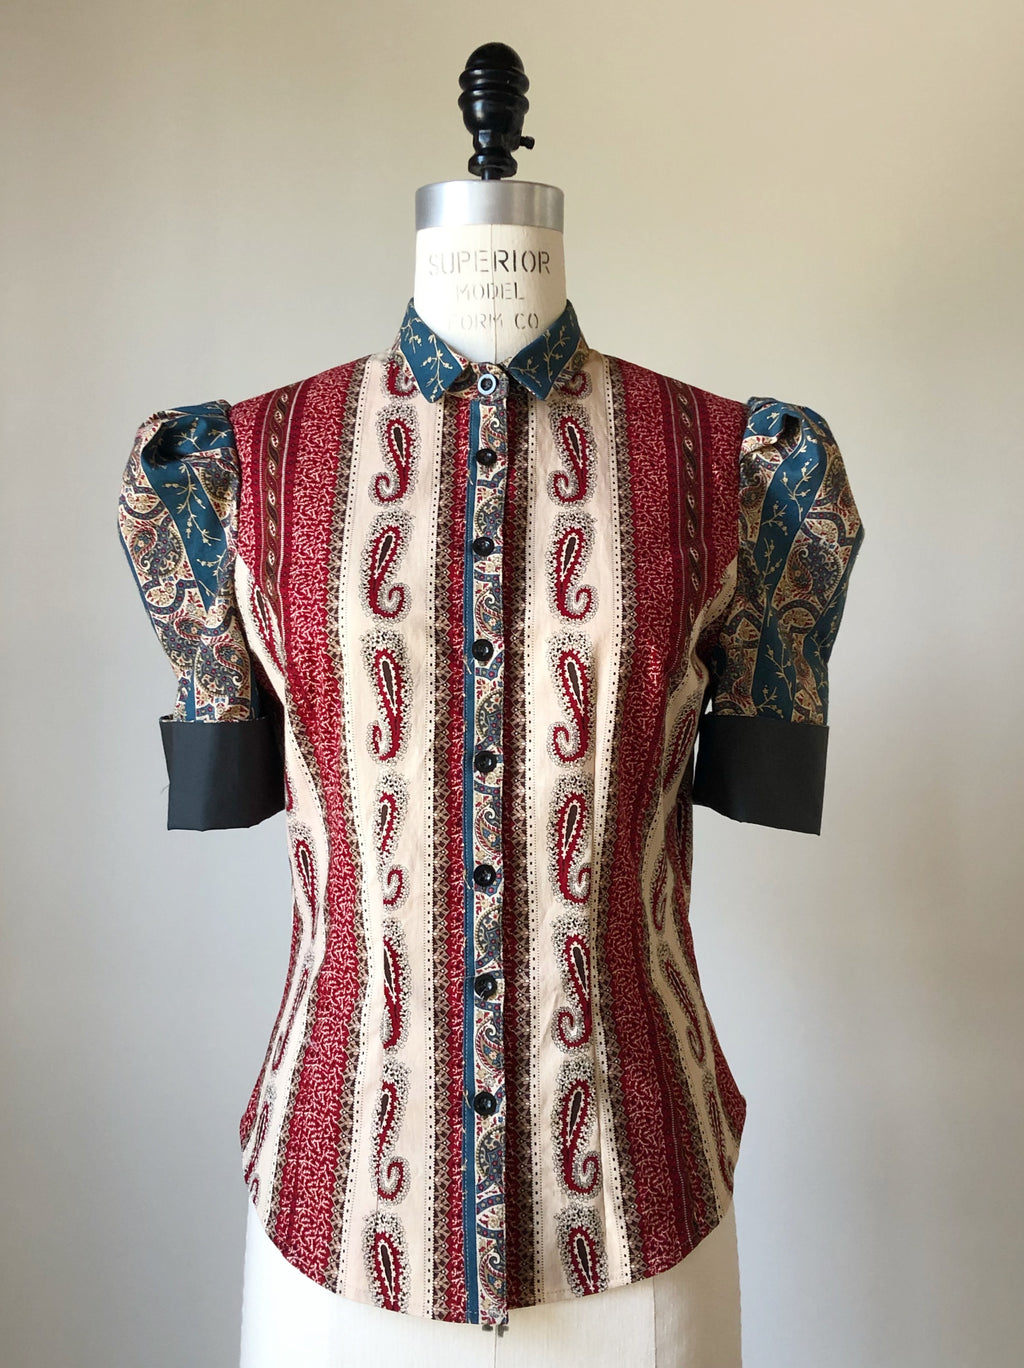 Lillian work shirt in 19th century reproduction prints #3